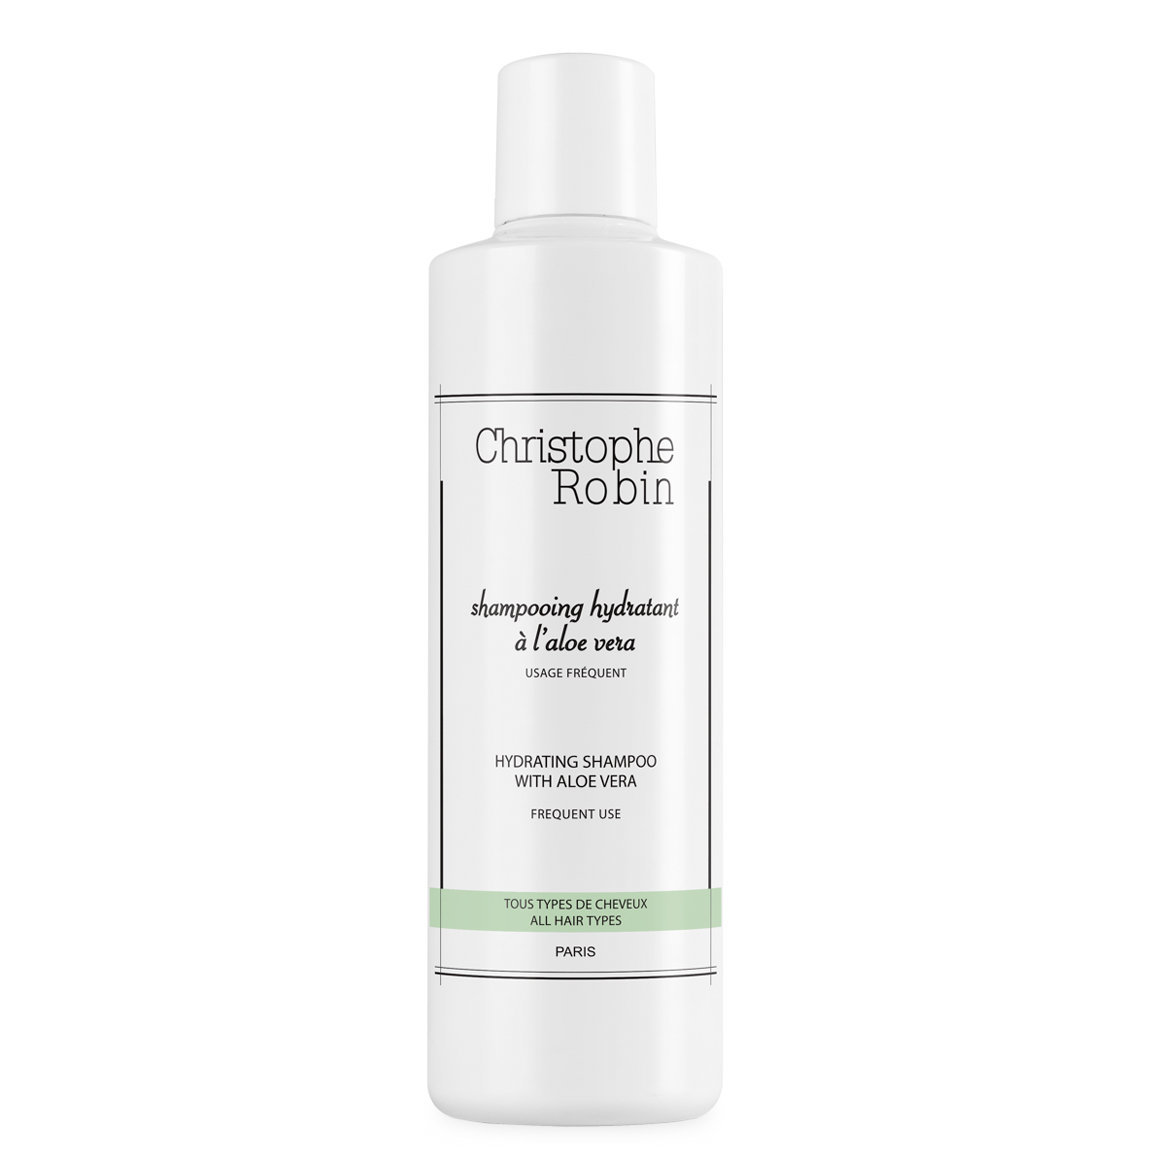 Christophe Robin Hydrating Shampoo with Aloe Vera alternative view 1 - product swatch.